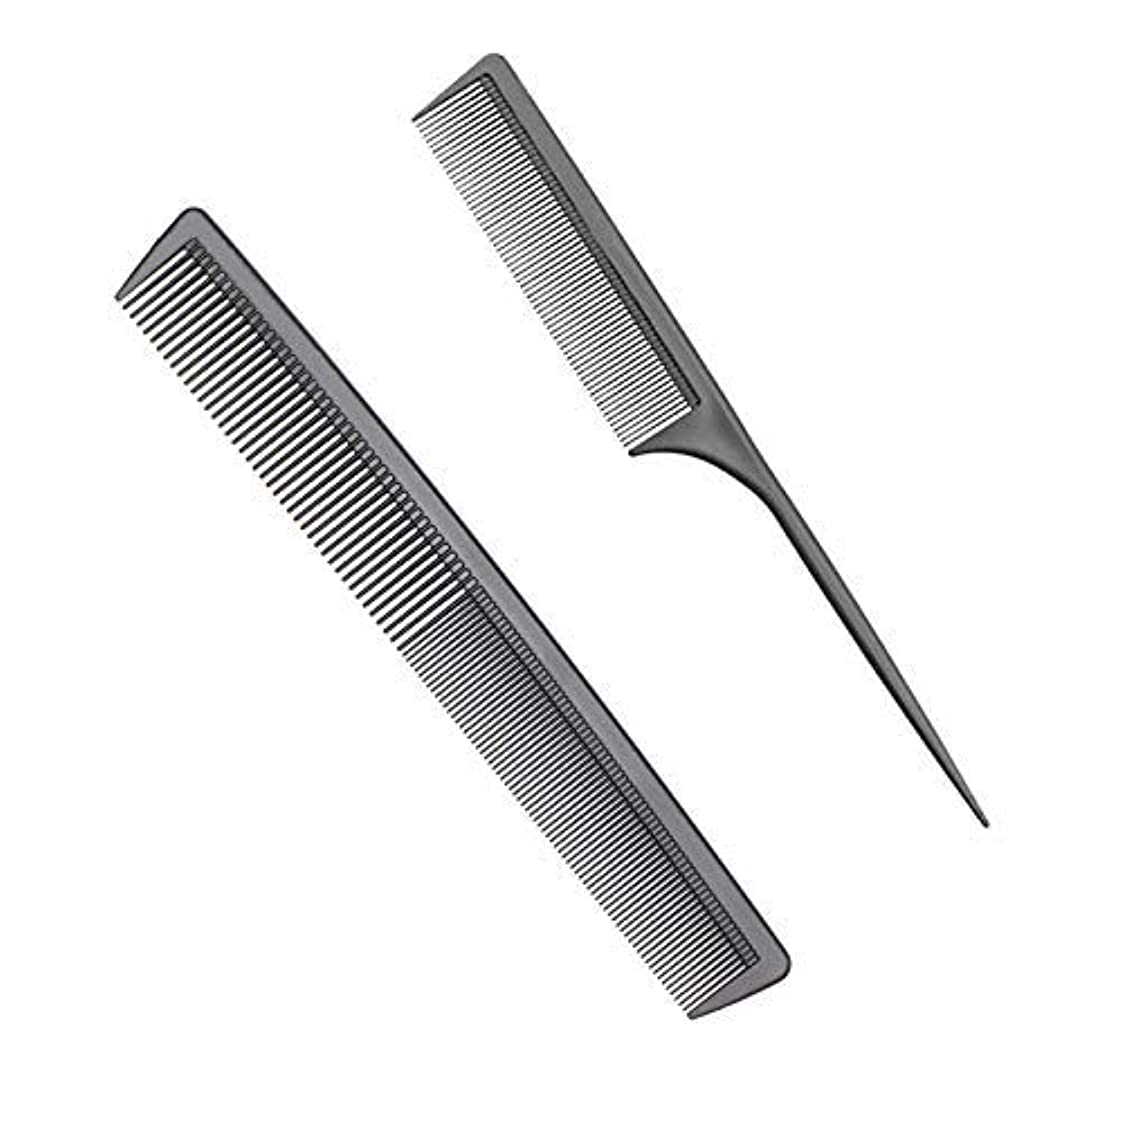 Professional Teasing Comb, Fine and Wide Tooth Hair Barber Comb, Black Carbon Fiber Cutting Comb, Styling Comb...